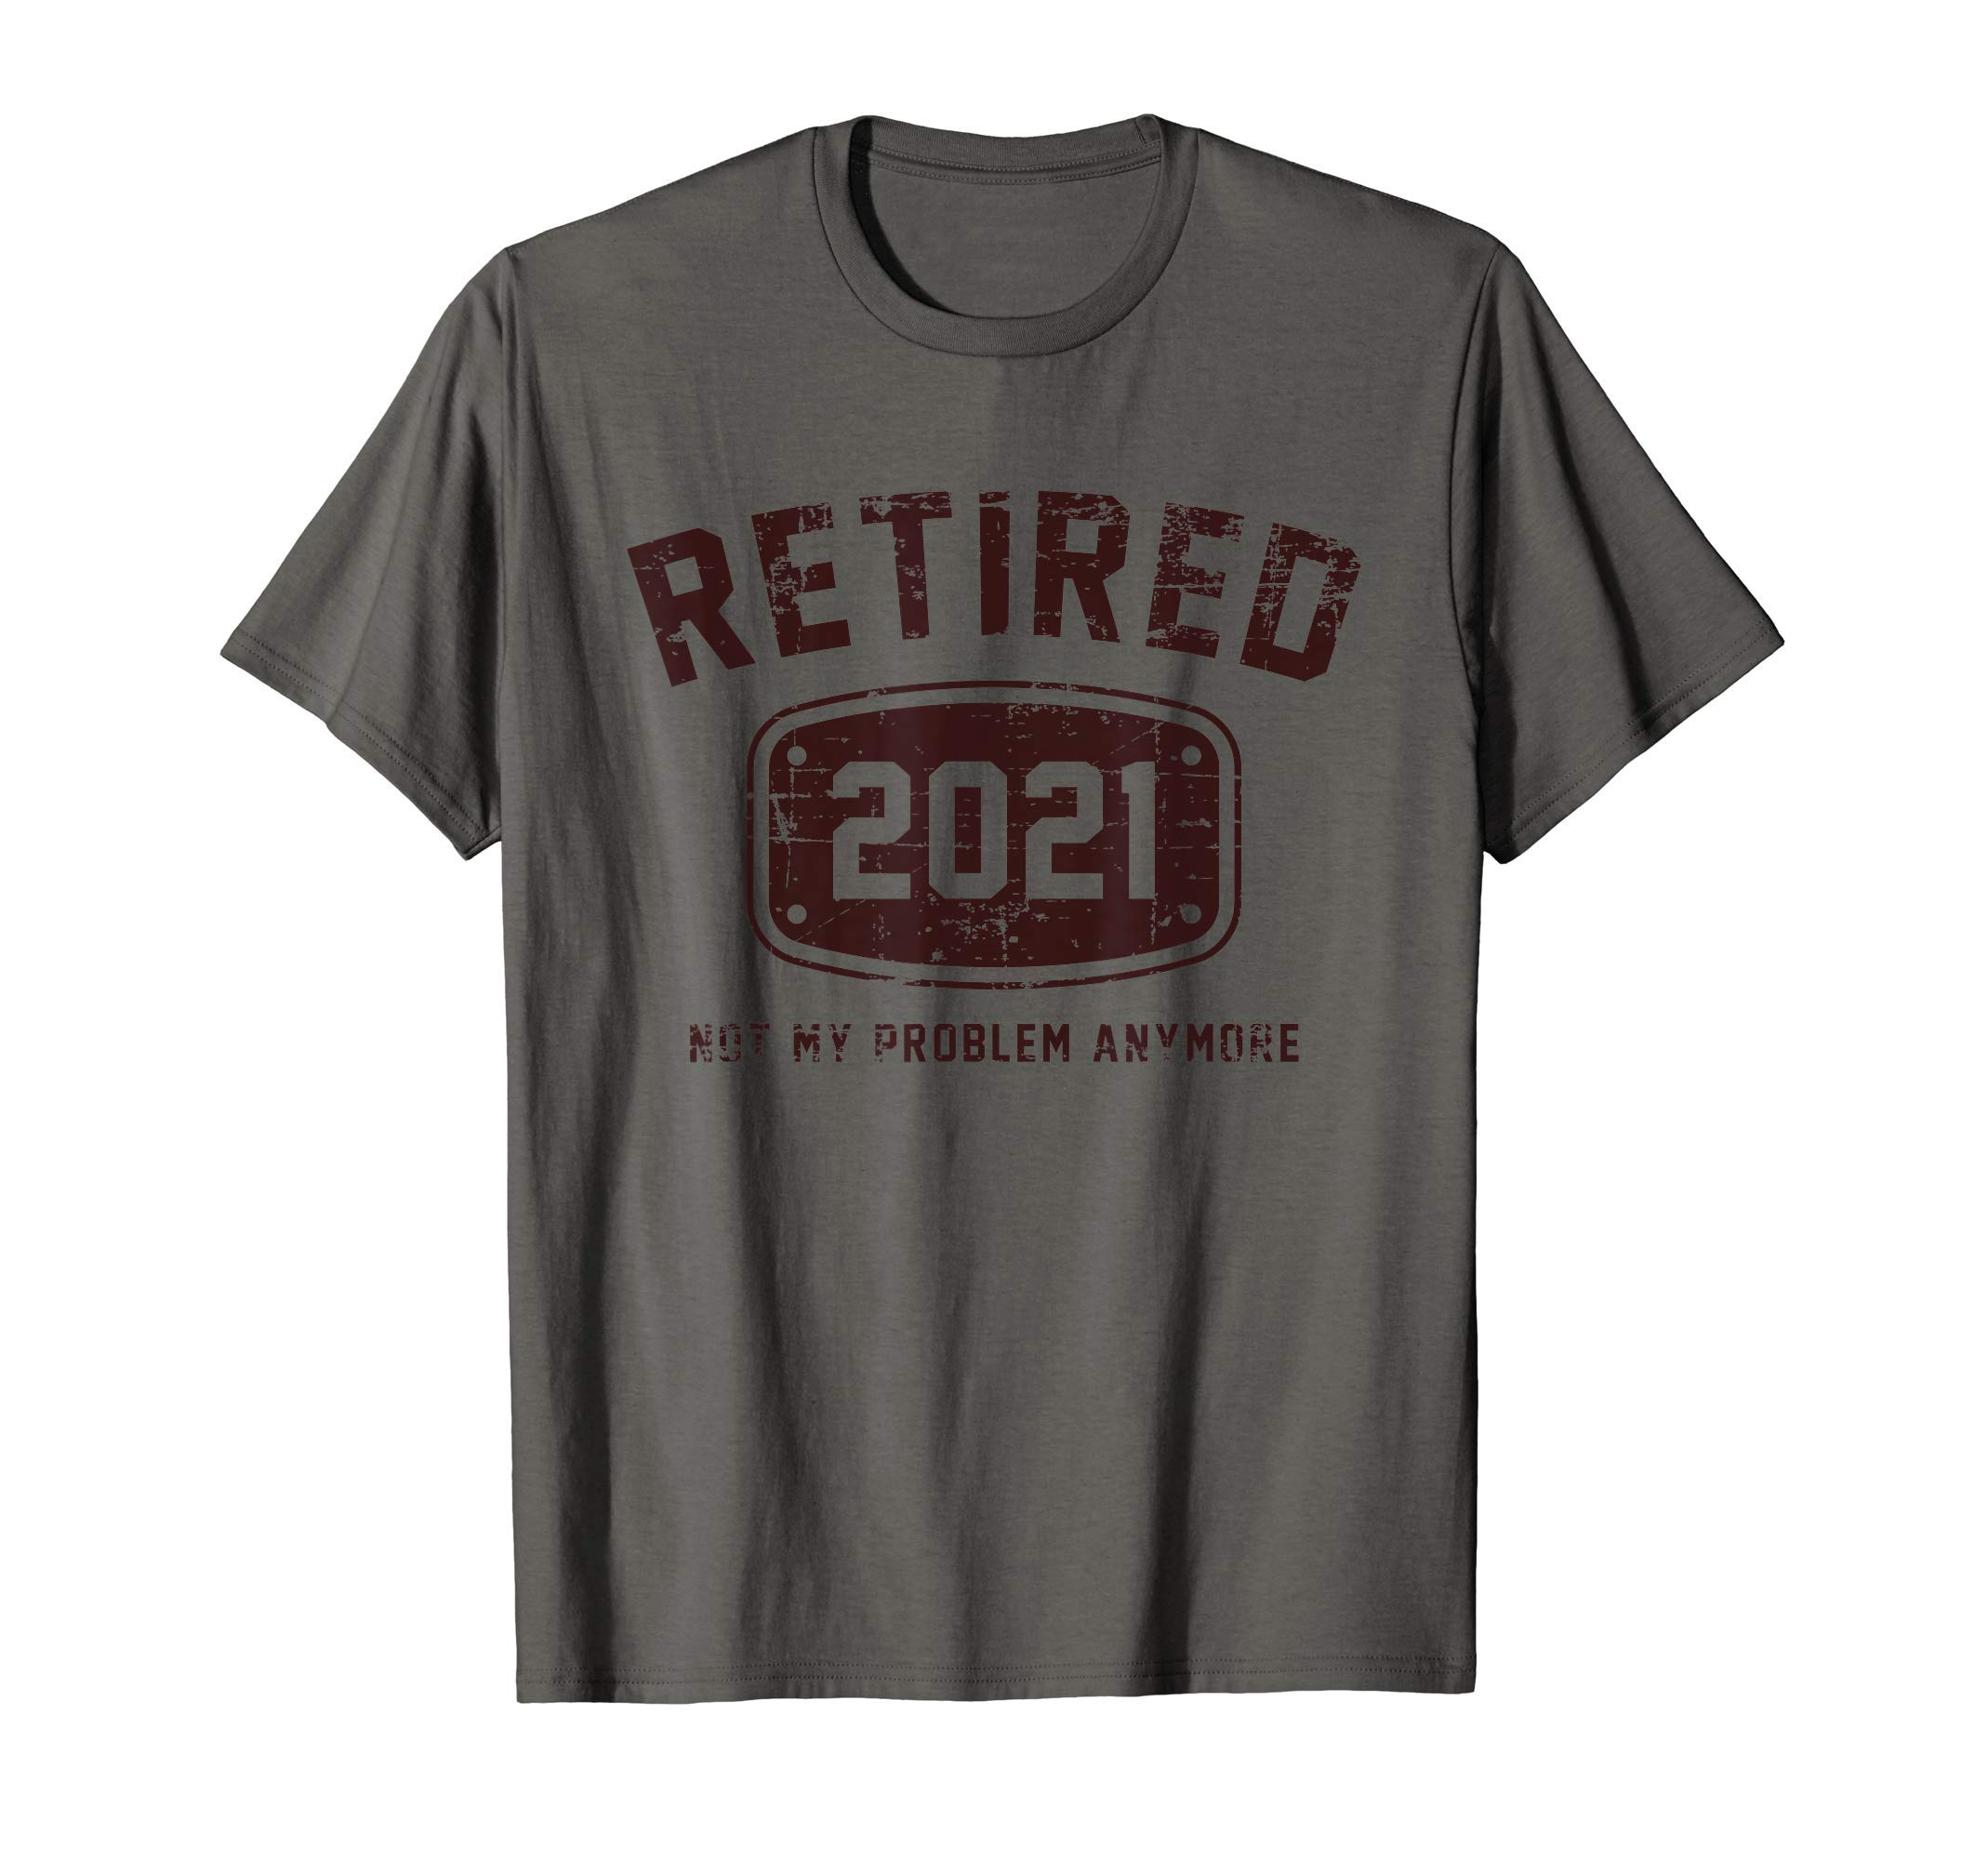 Retired 2021 Not My Problem Anymore - Vintage Gift T-Shirt